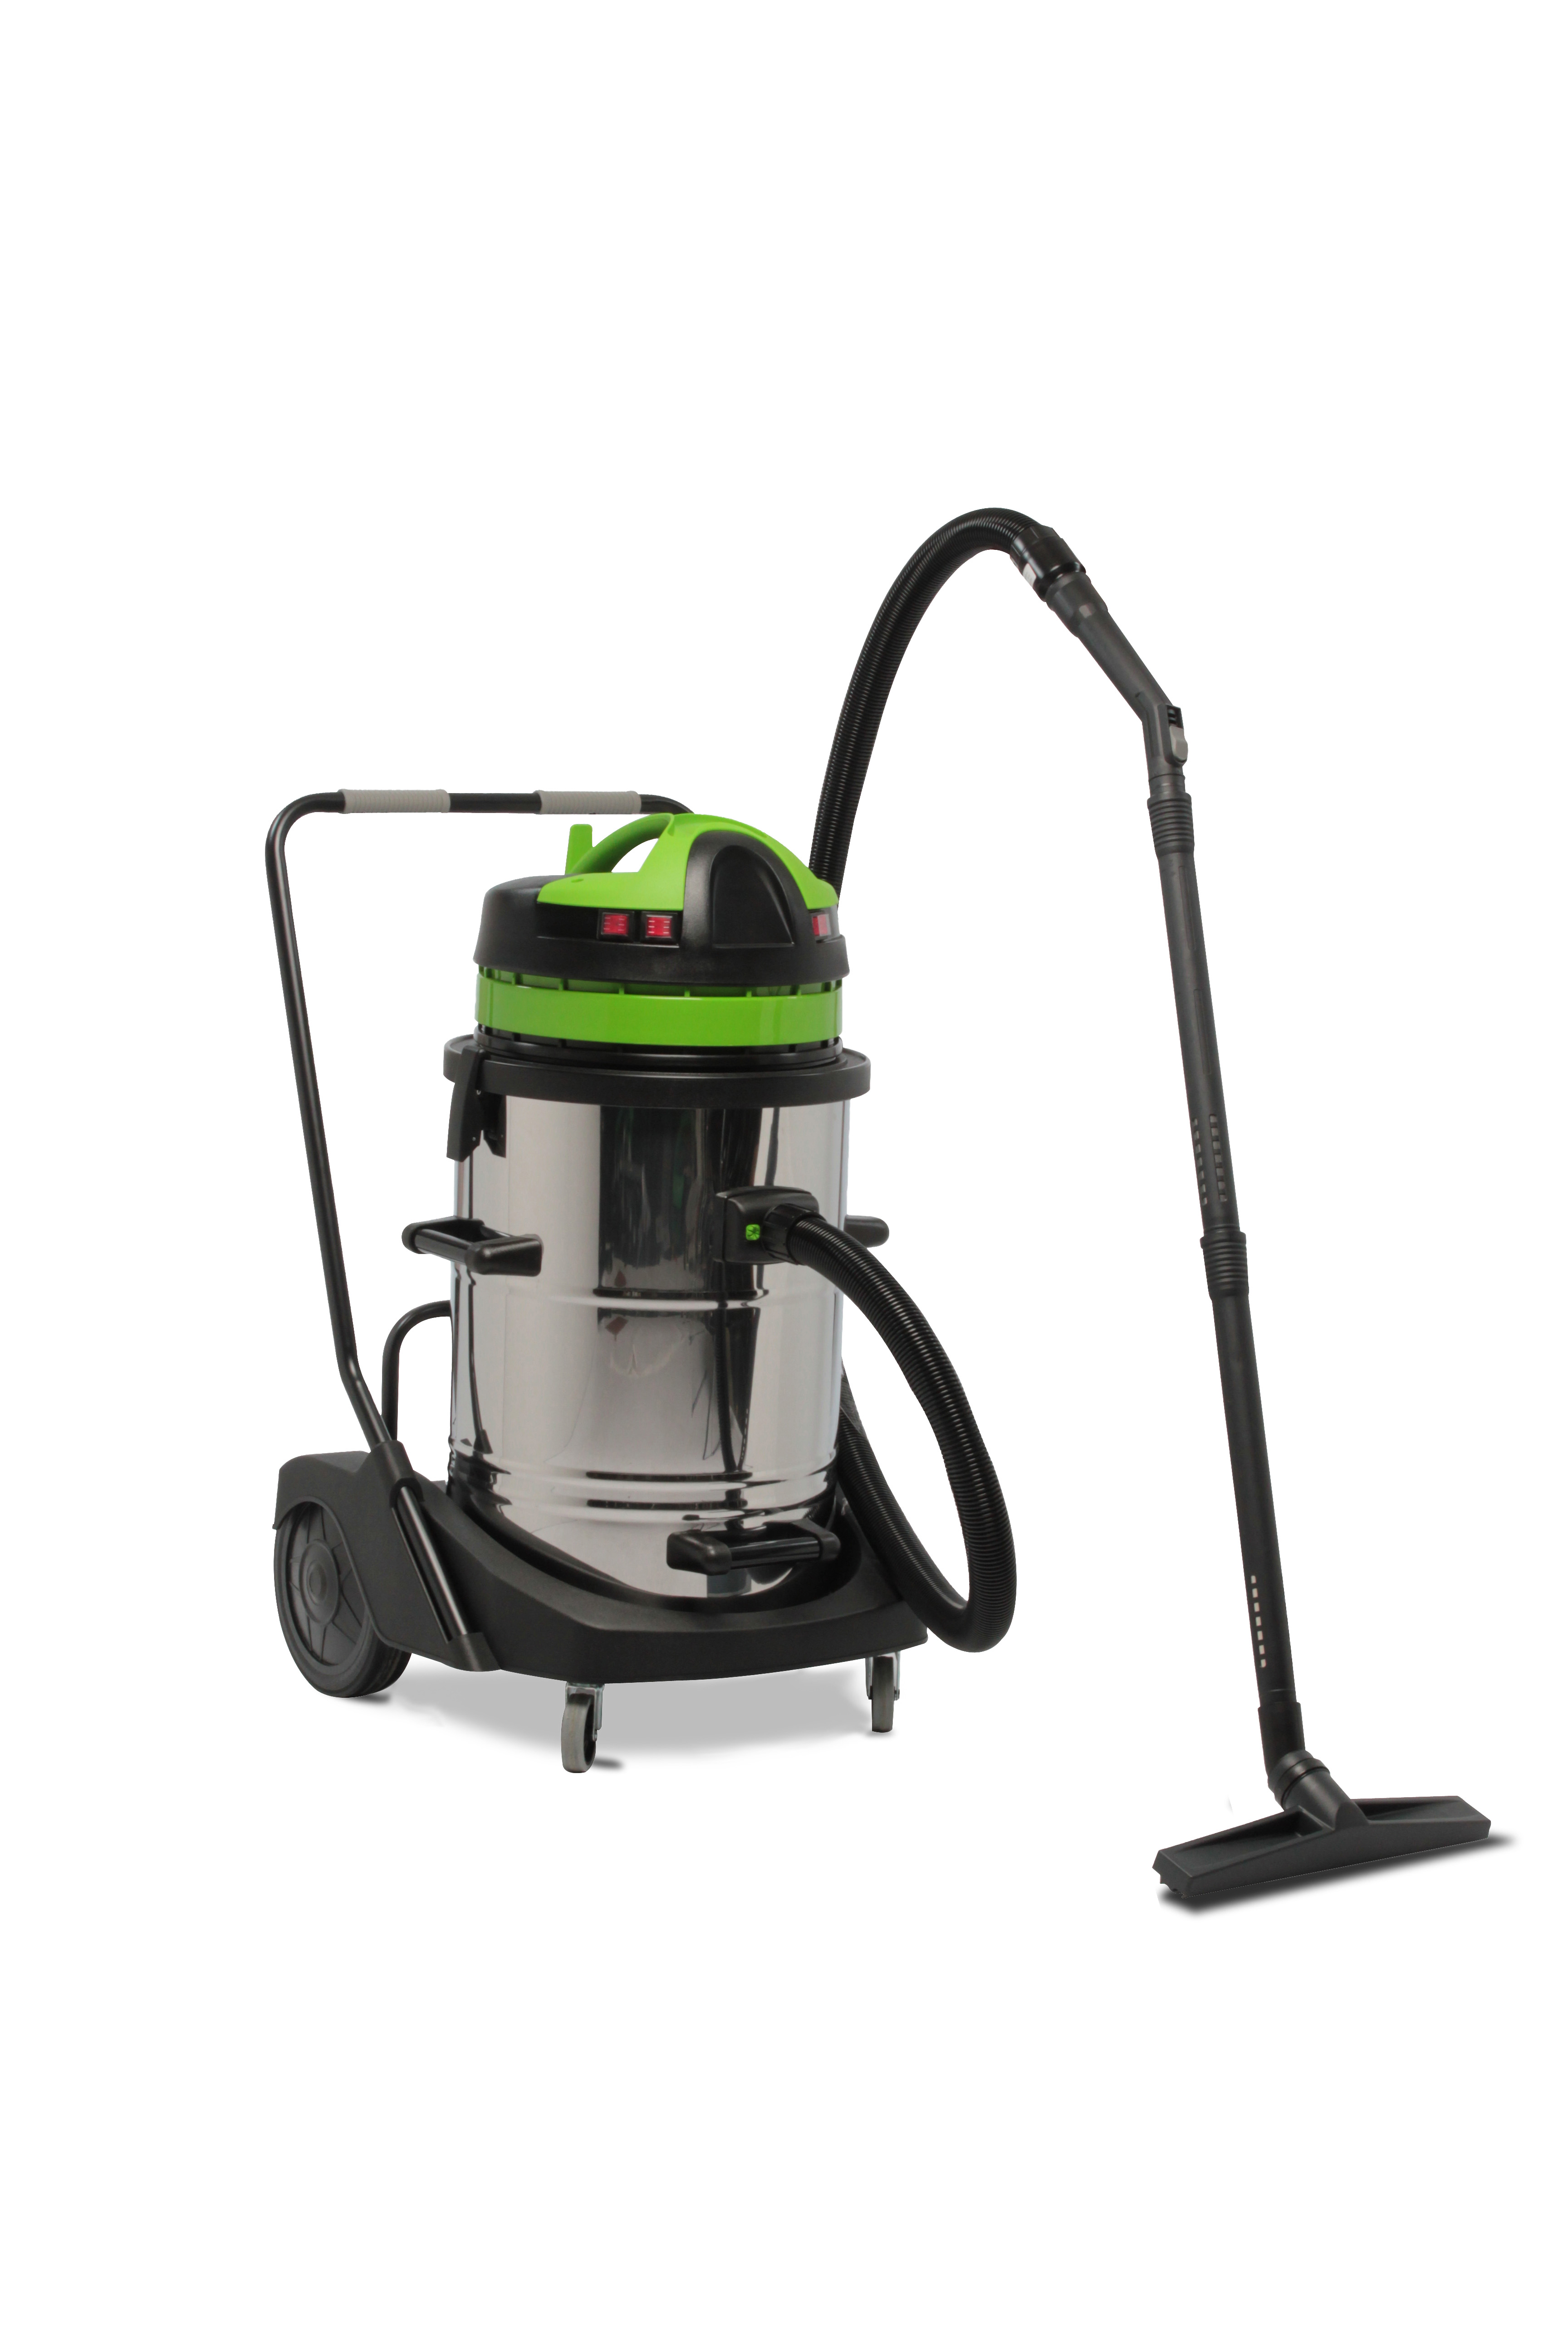 Gs 3 78 Wet And Dry Vacuum Cleaner